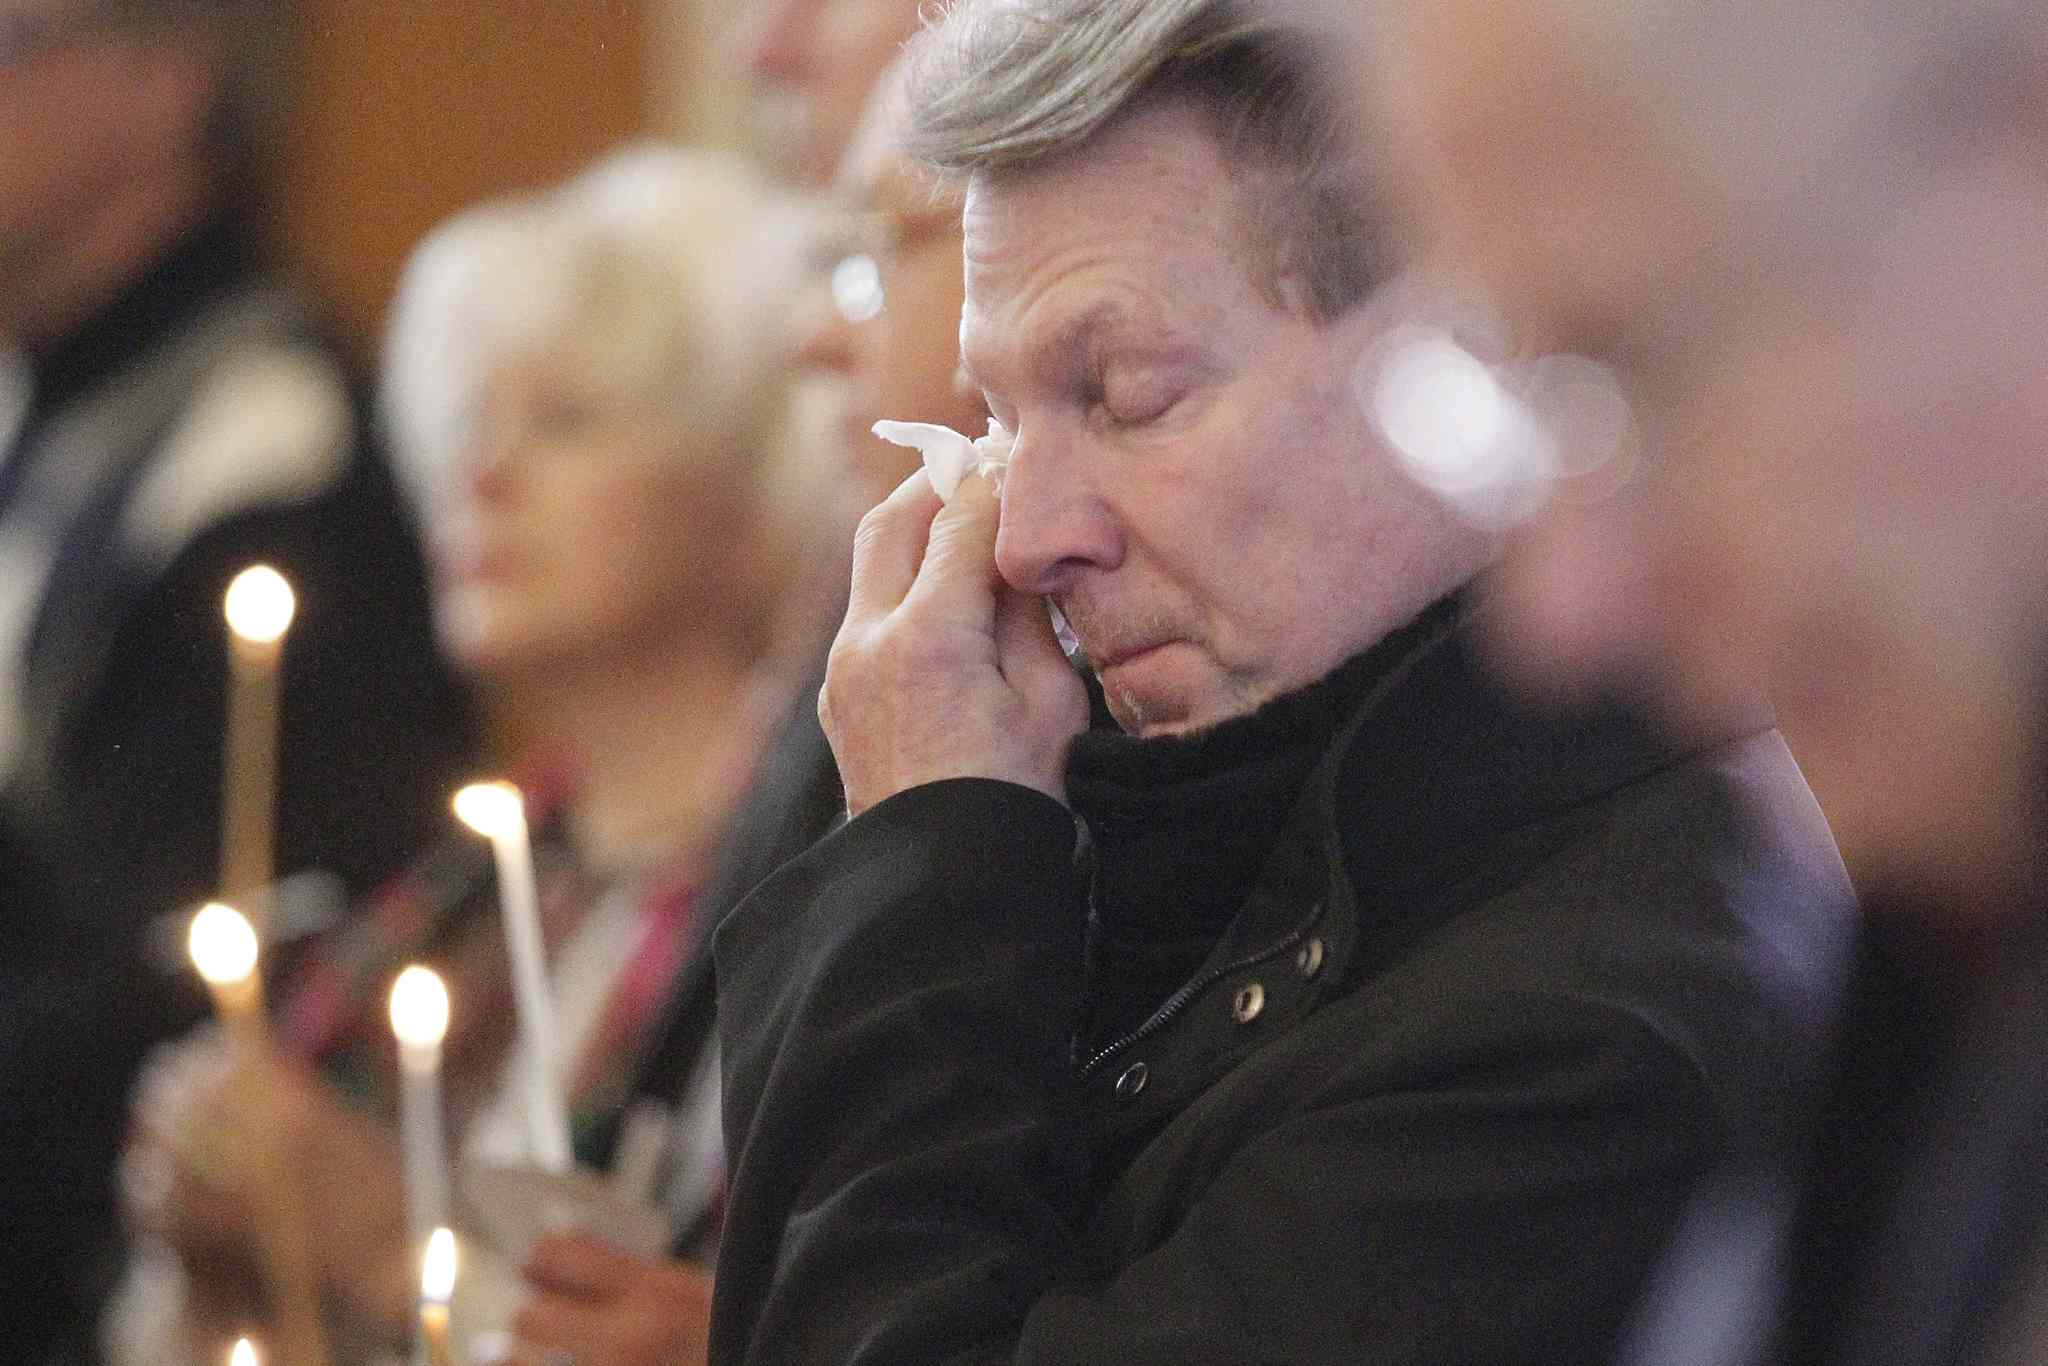 People gathered for a memorial service for victims of violence in Ukraine at Holy Eucharist Ukrainian Catholic Church on Sunday.